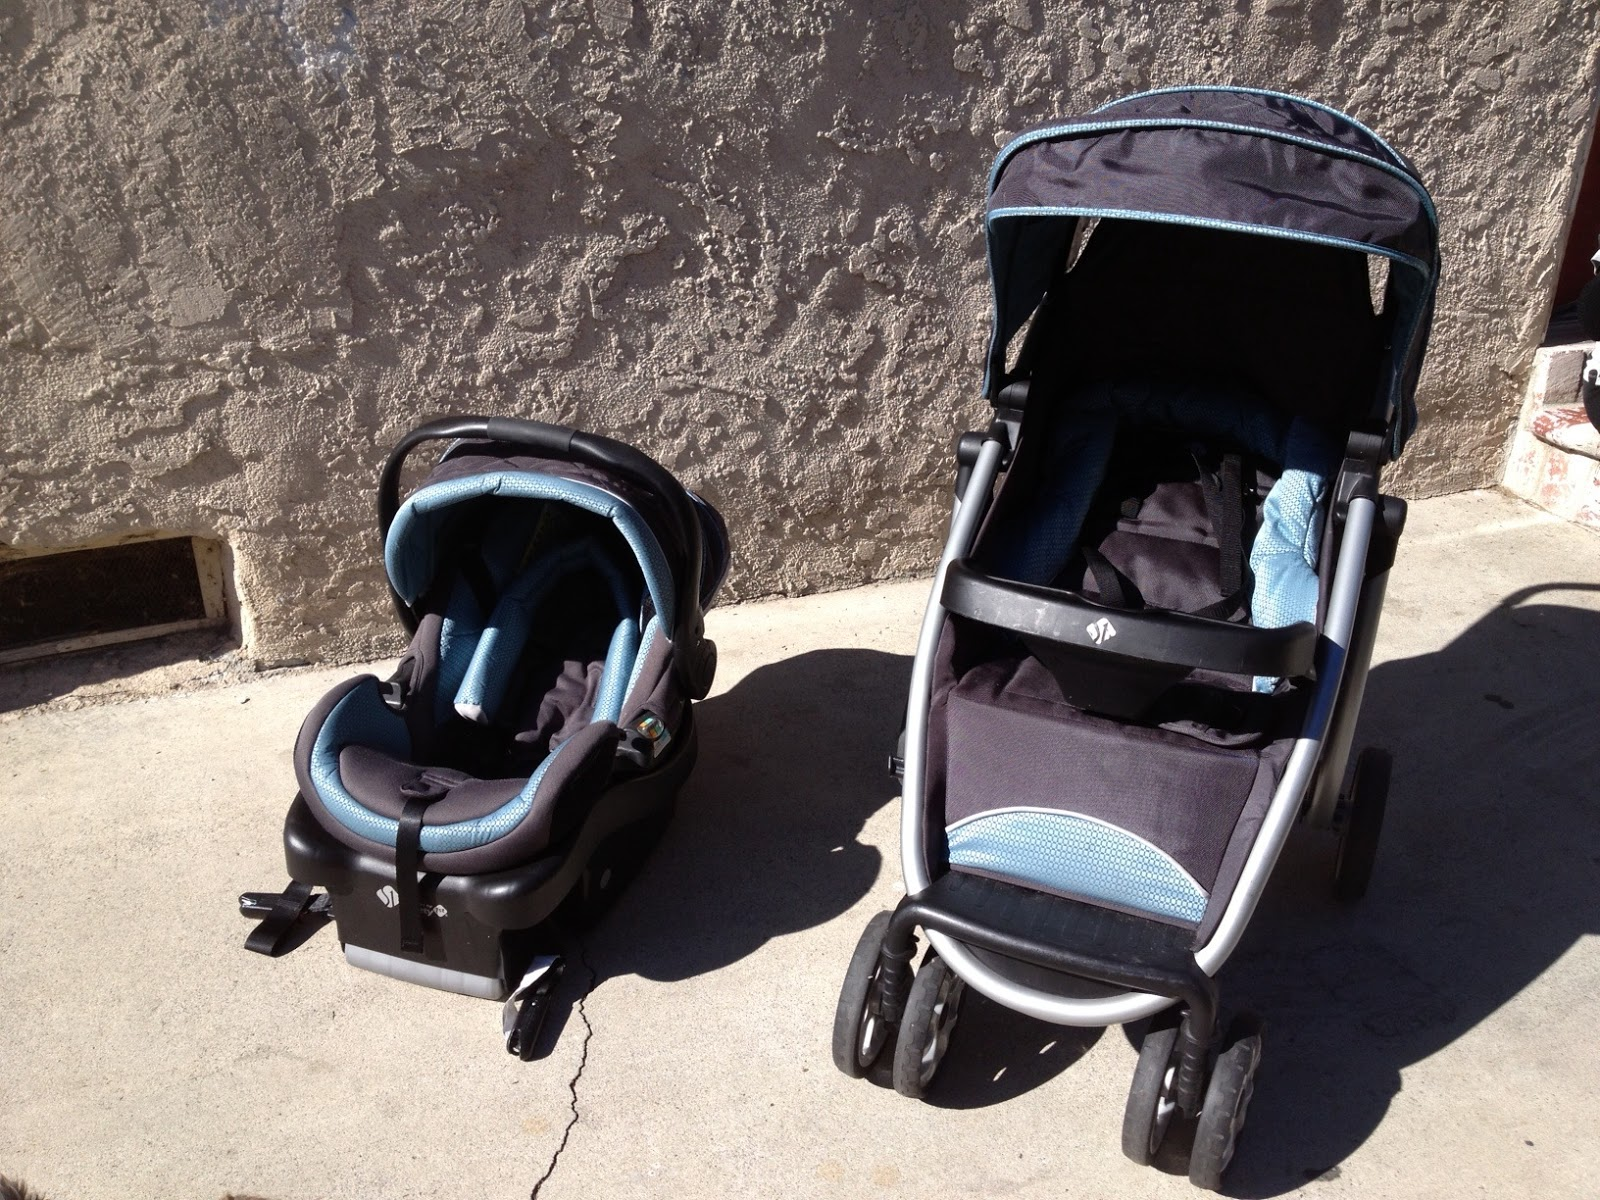 What To Look For When Buying A Stoller Travel System?